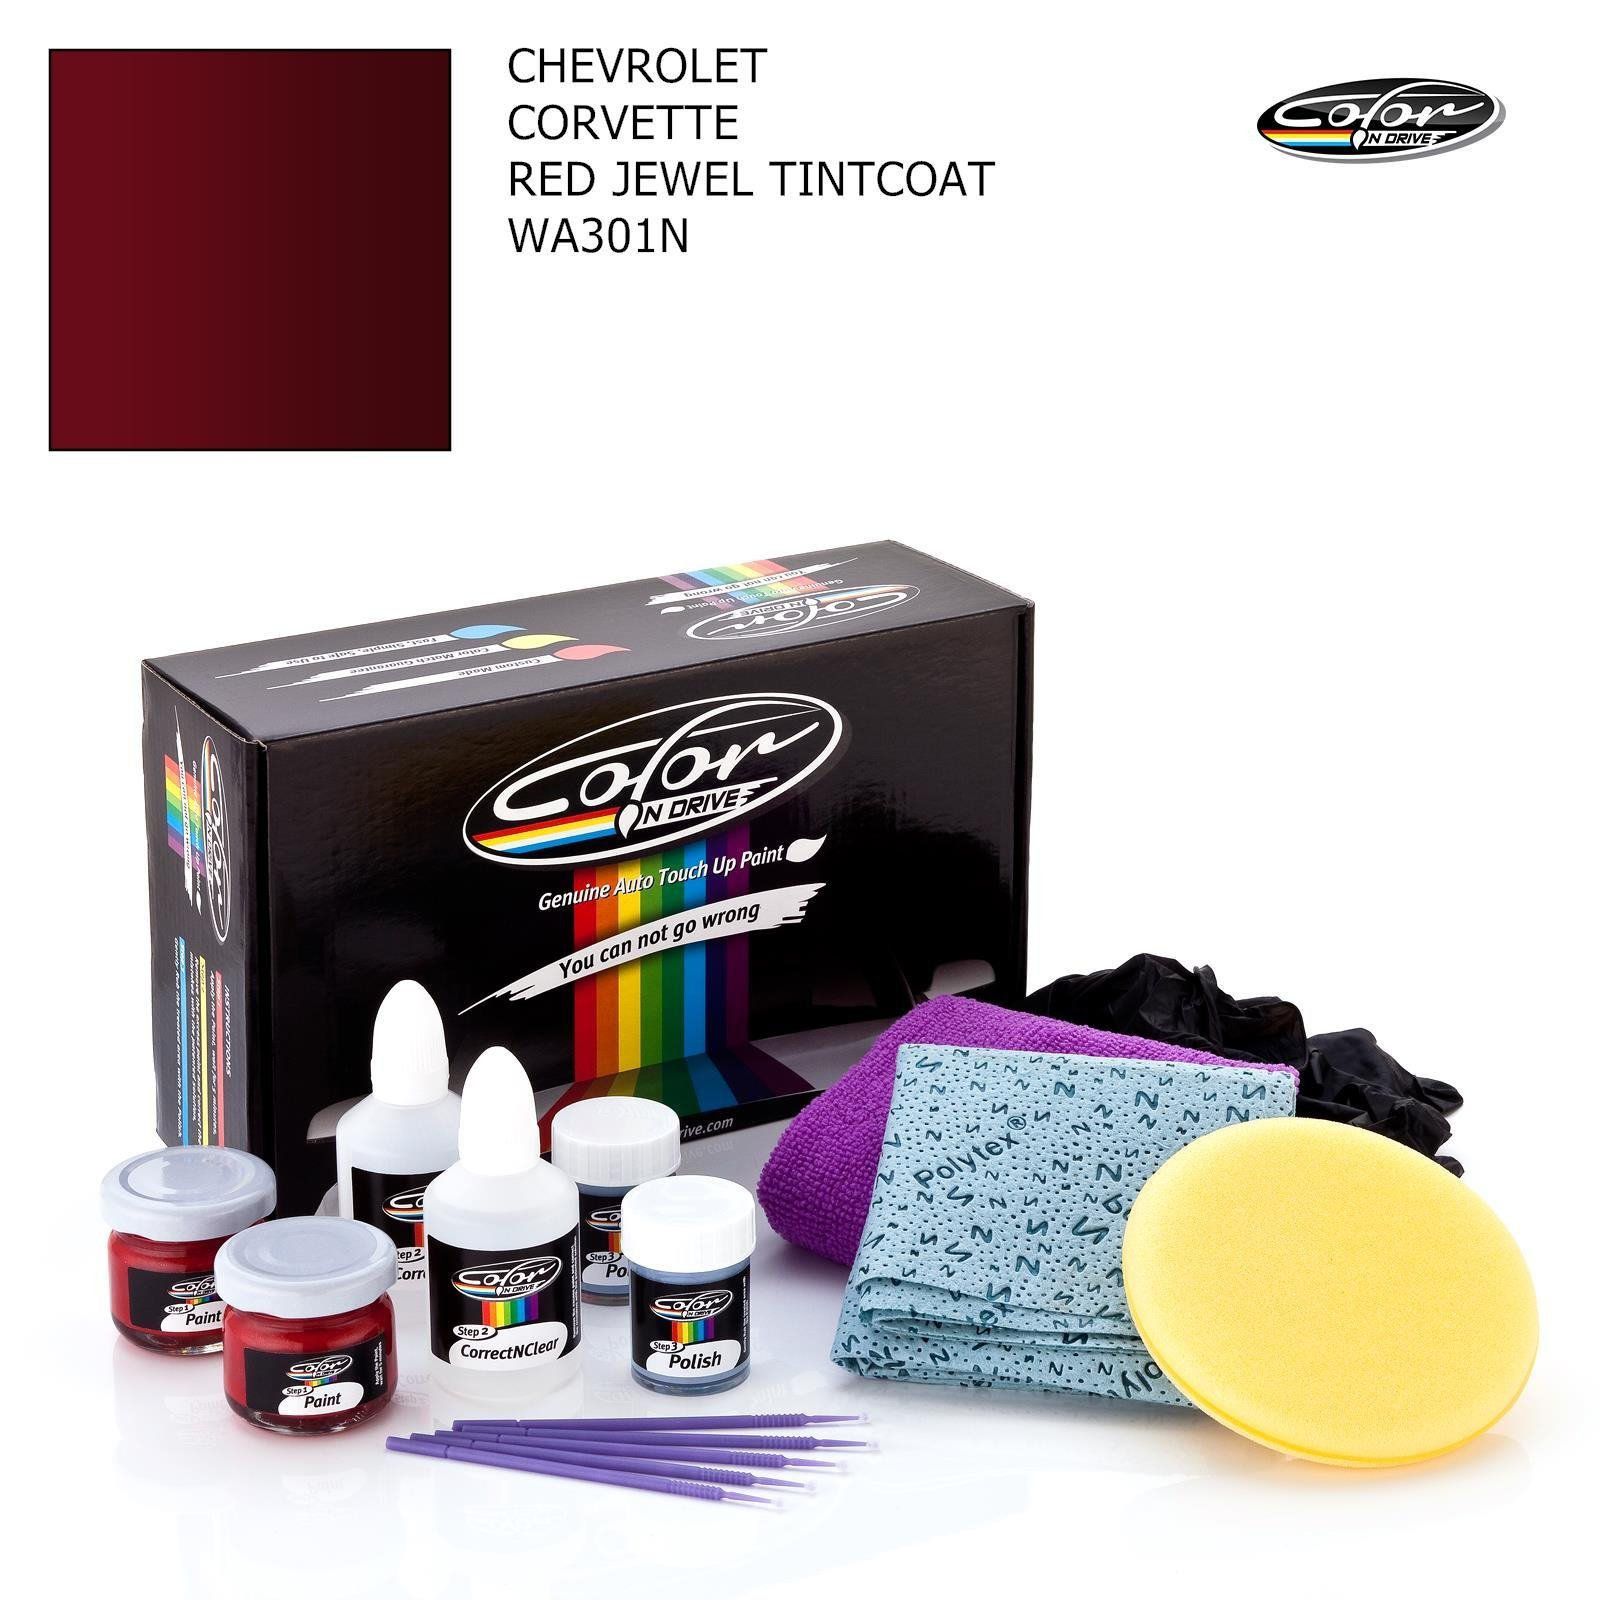 Chevrolet Corvette/RED Jewel TINTCOAT - WA301N / Color N Drive Touch UP Paint System for Paint Chips and Scratches/PRO Pack